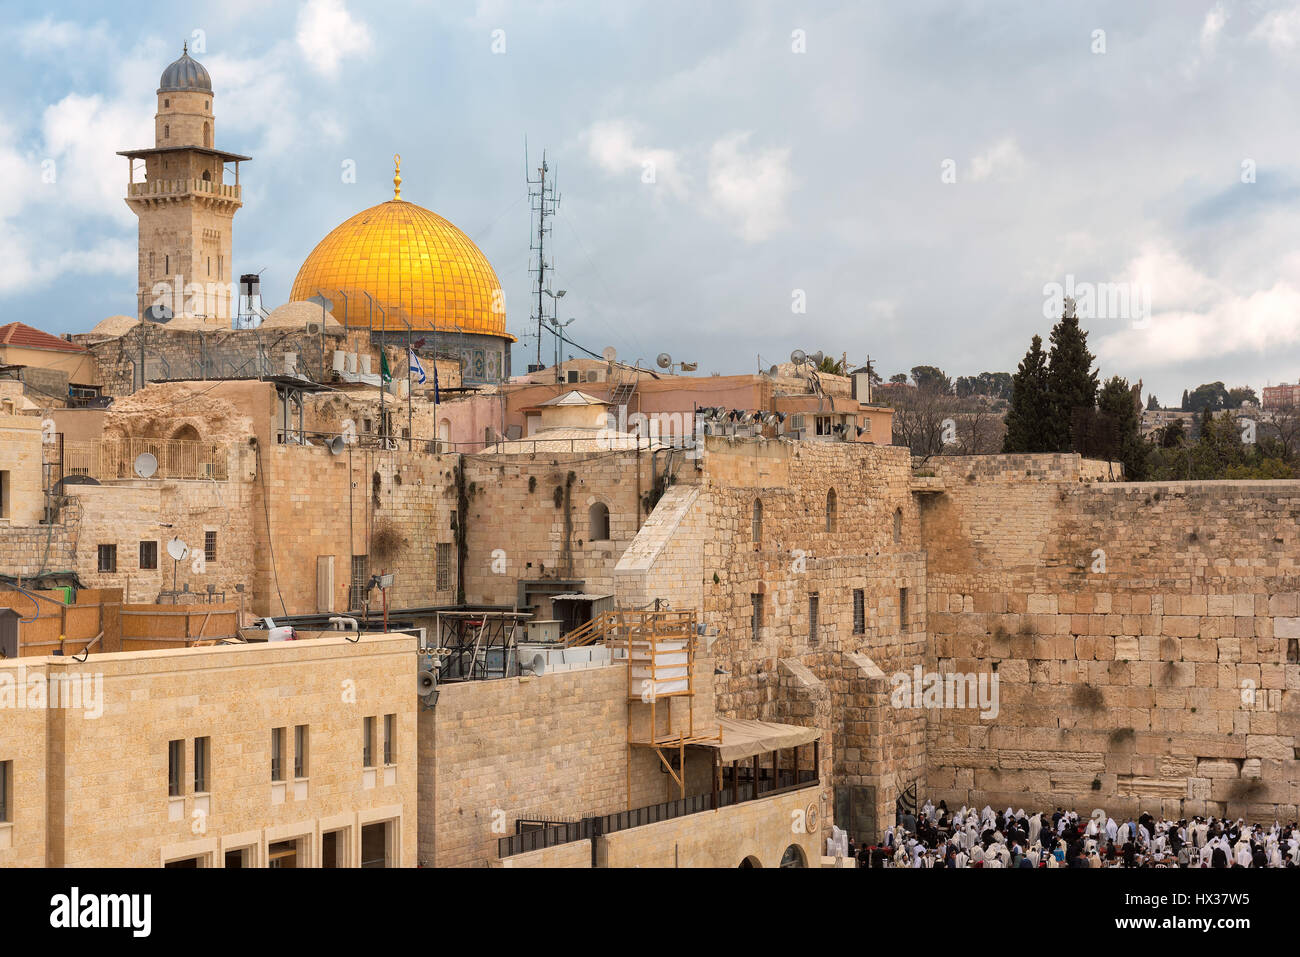 Western Wall and golden Dome of the Rock at sunset, Jerusalem Old City,  Israel. - Stock Image